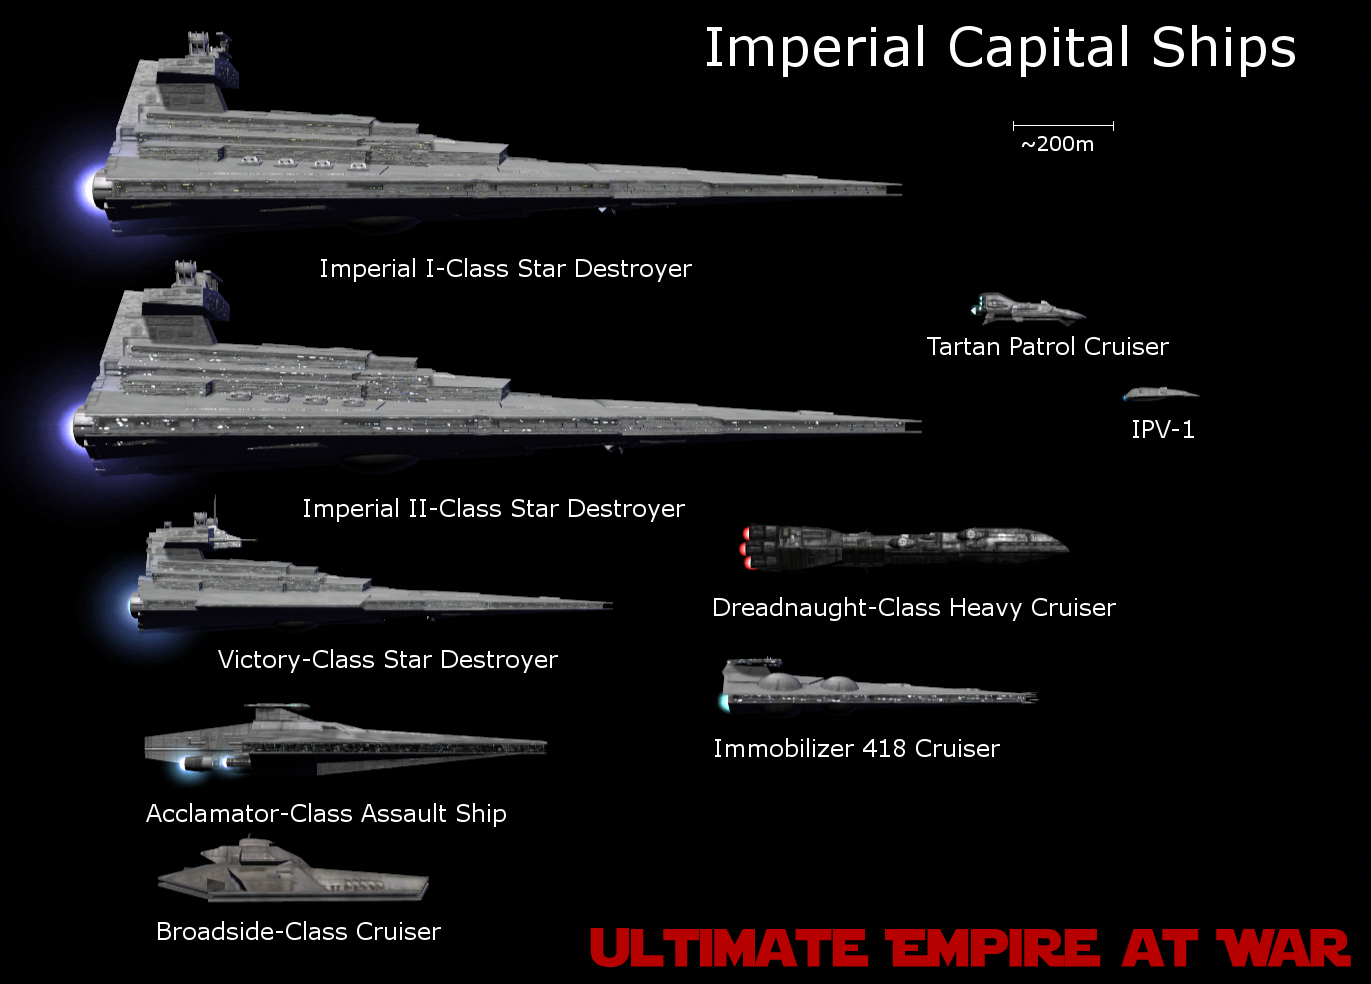 Star Wars Ship Capital Ships Image Ultimate Empire At War Mod For Star Wars Mmogameszombies Star Wars Vehicles Star Wars Ships Star Wars Spaceships